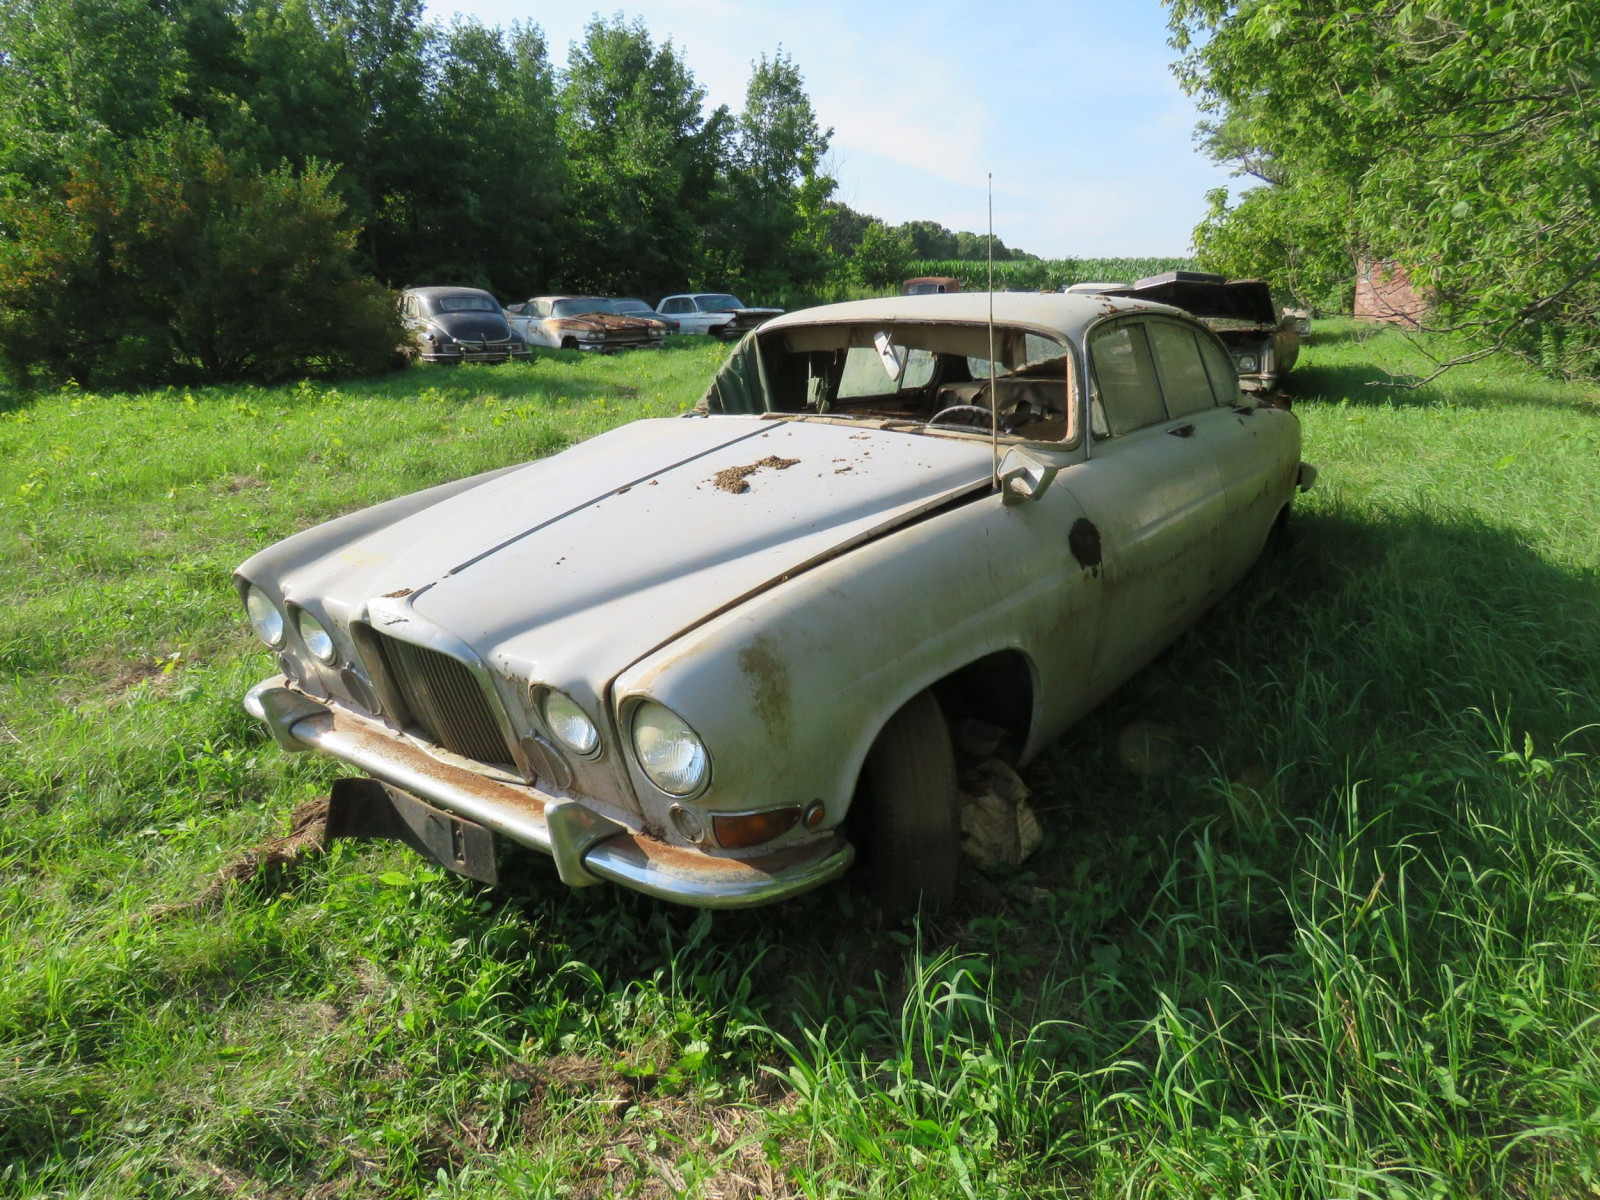 1965 Jaguar Mark X 4dr Sedan Project - Image 2